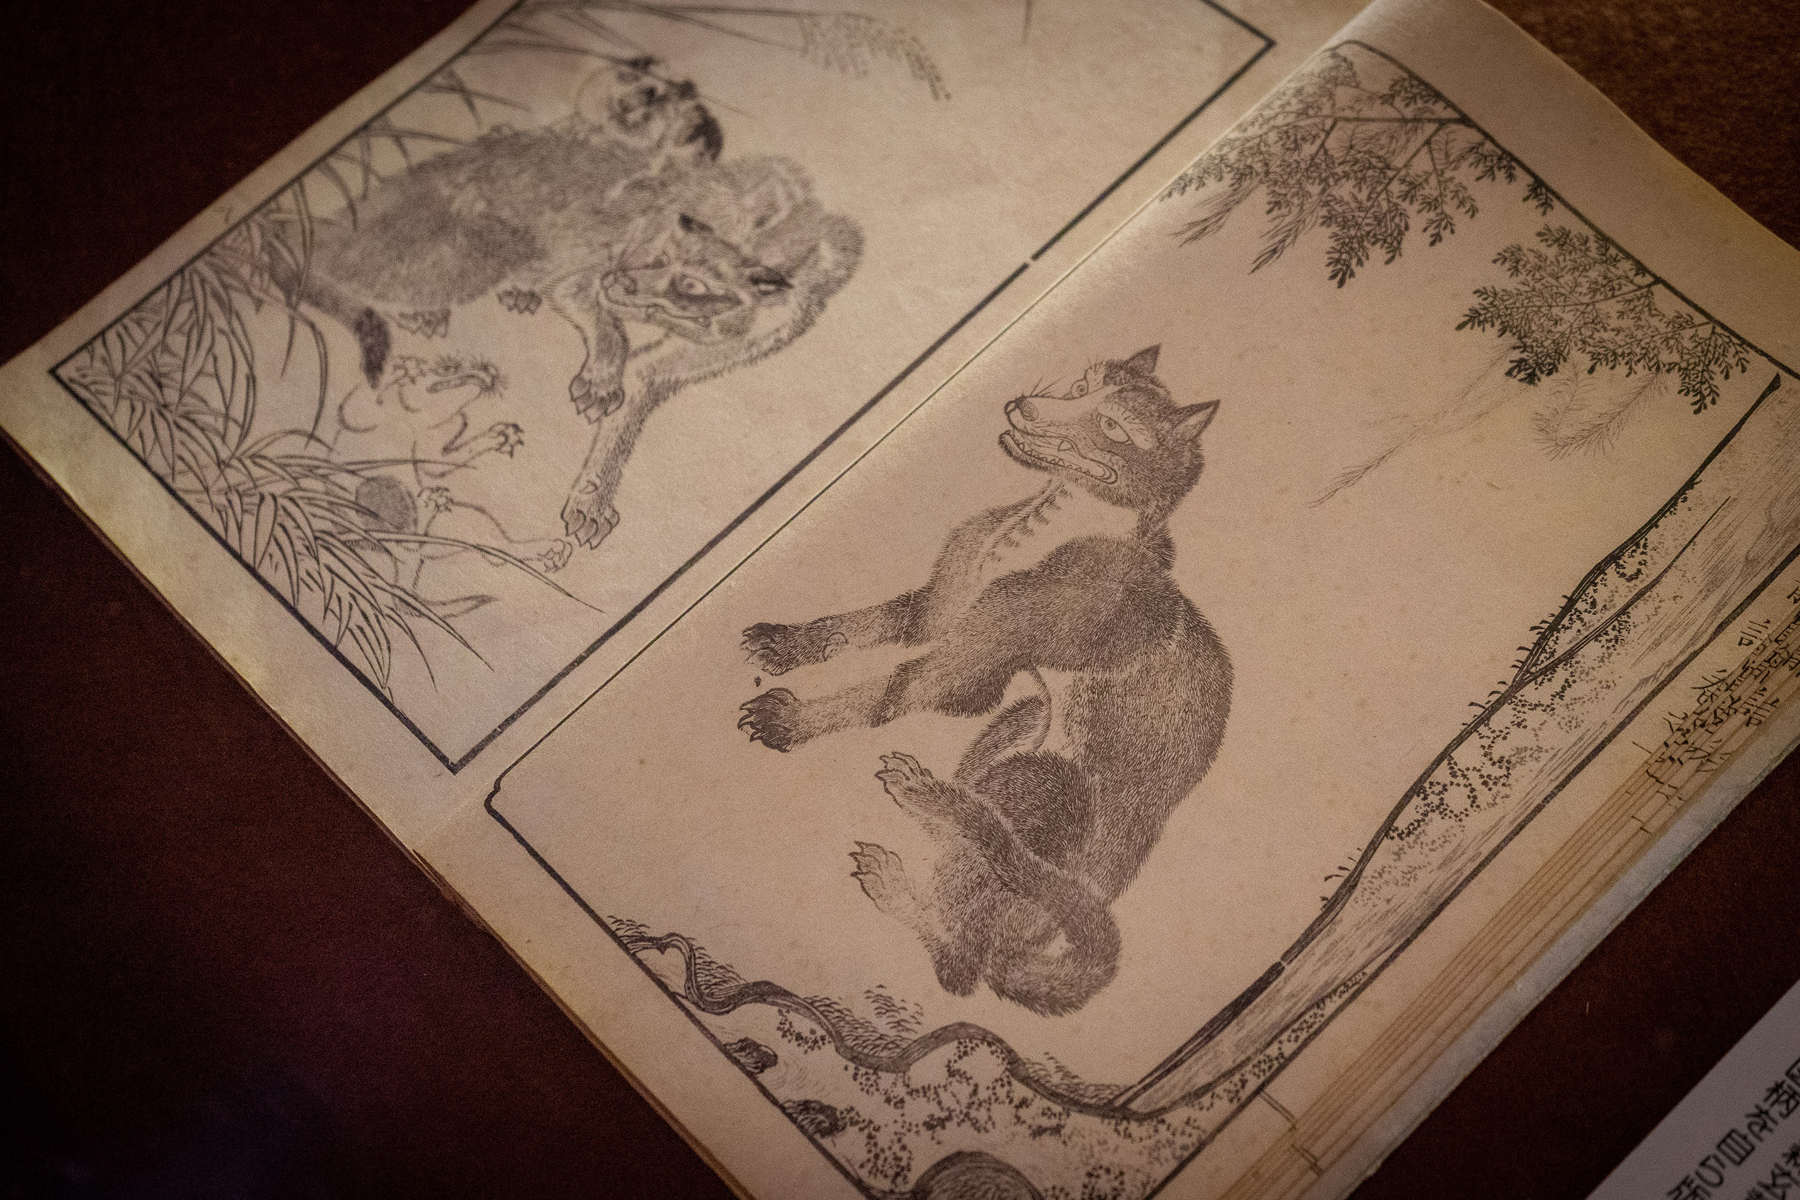 The Japanese wolf as depicted in a collection of artworks by Chichibu artist Mori Genkosai stored in Mitsumine Shrine's museum | OSCAR BOYD